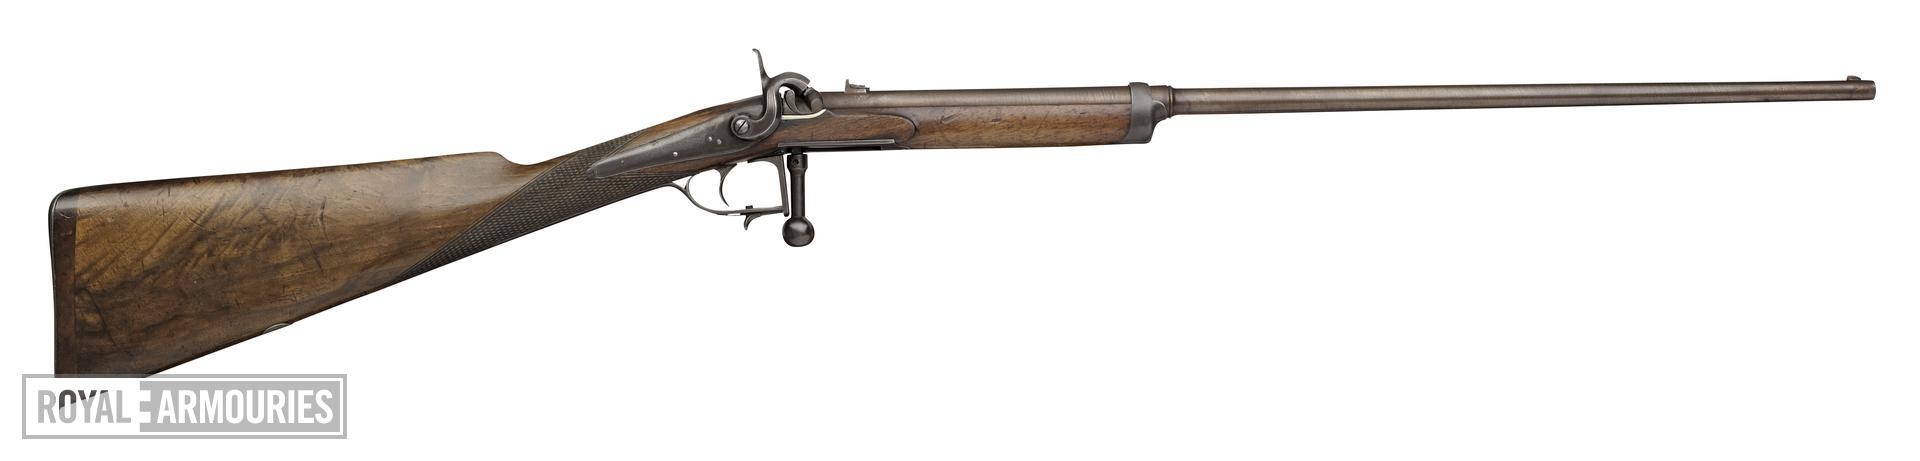 Percussion breech-loading rifle - By J. Blanch and Son By J. Blanch and Son Incorporating Prince's Patent